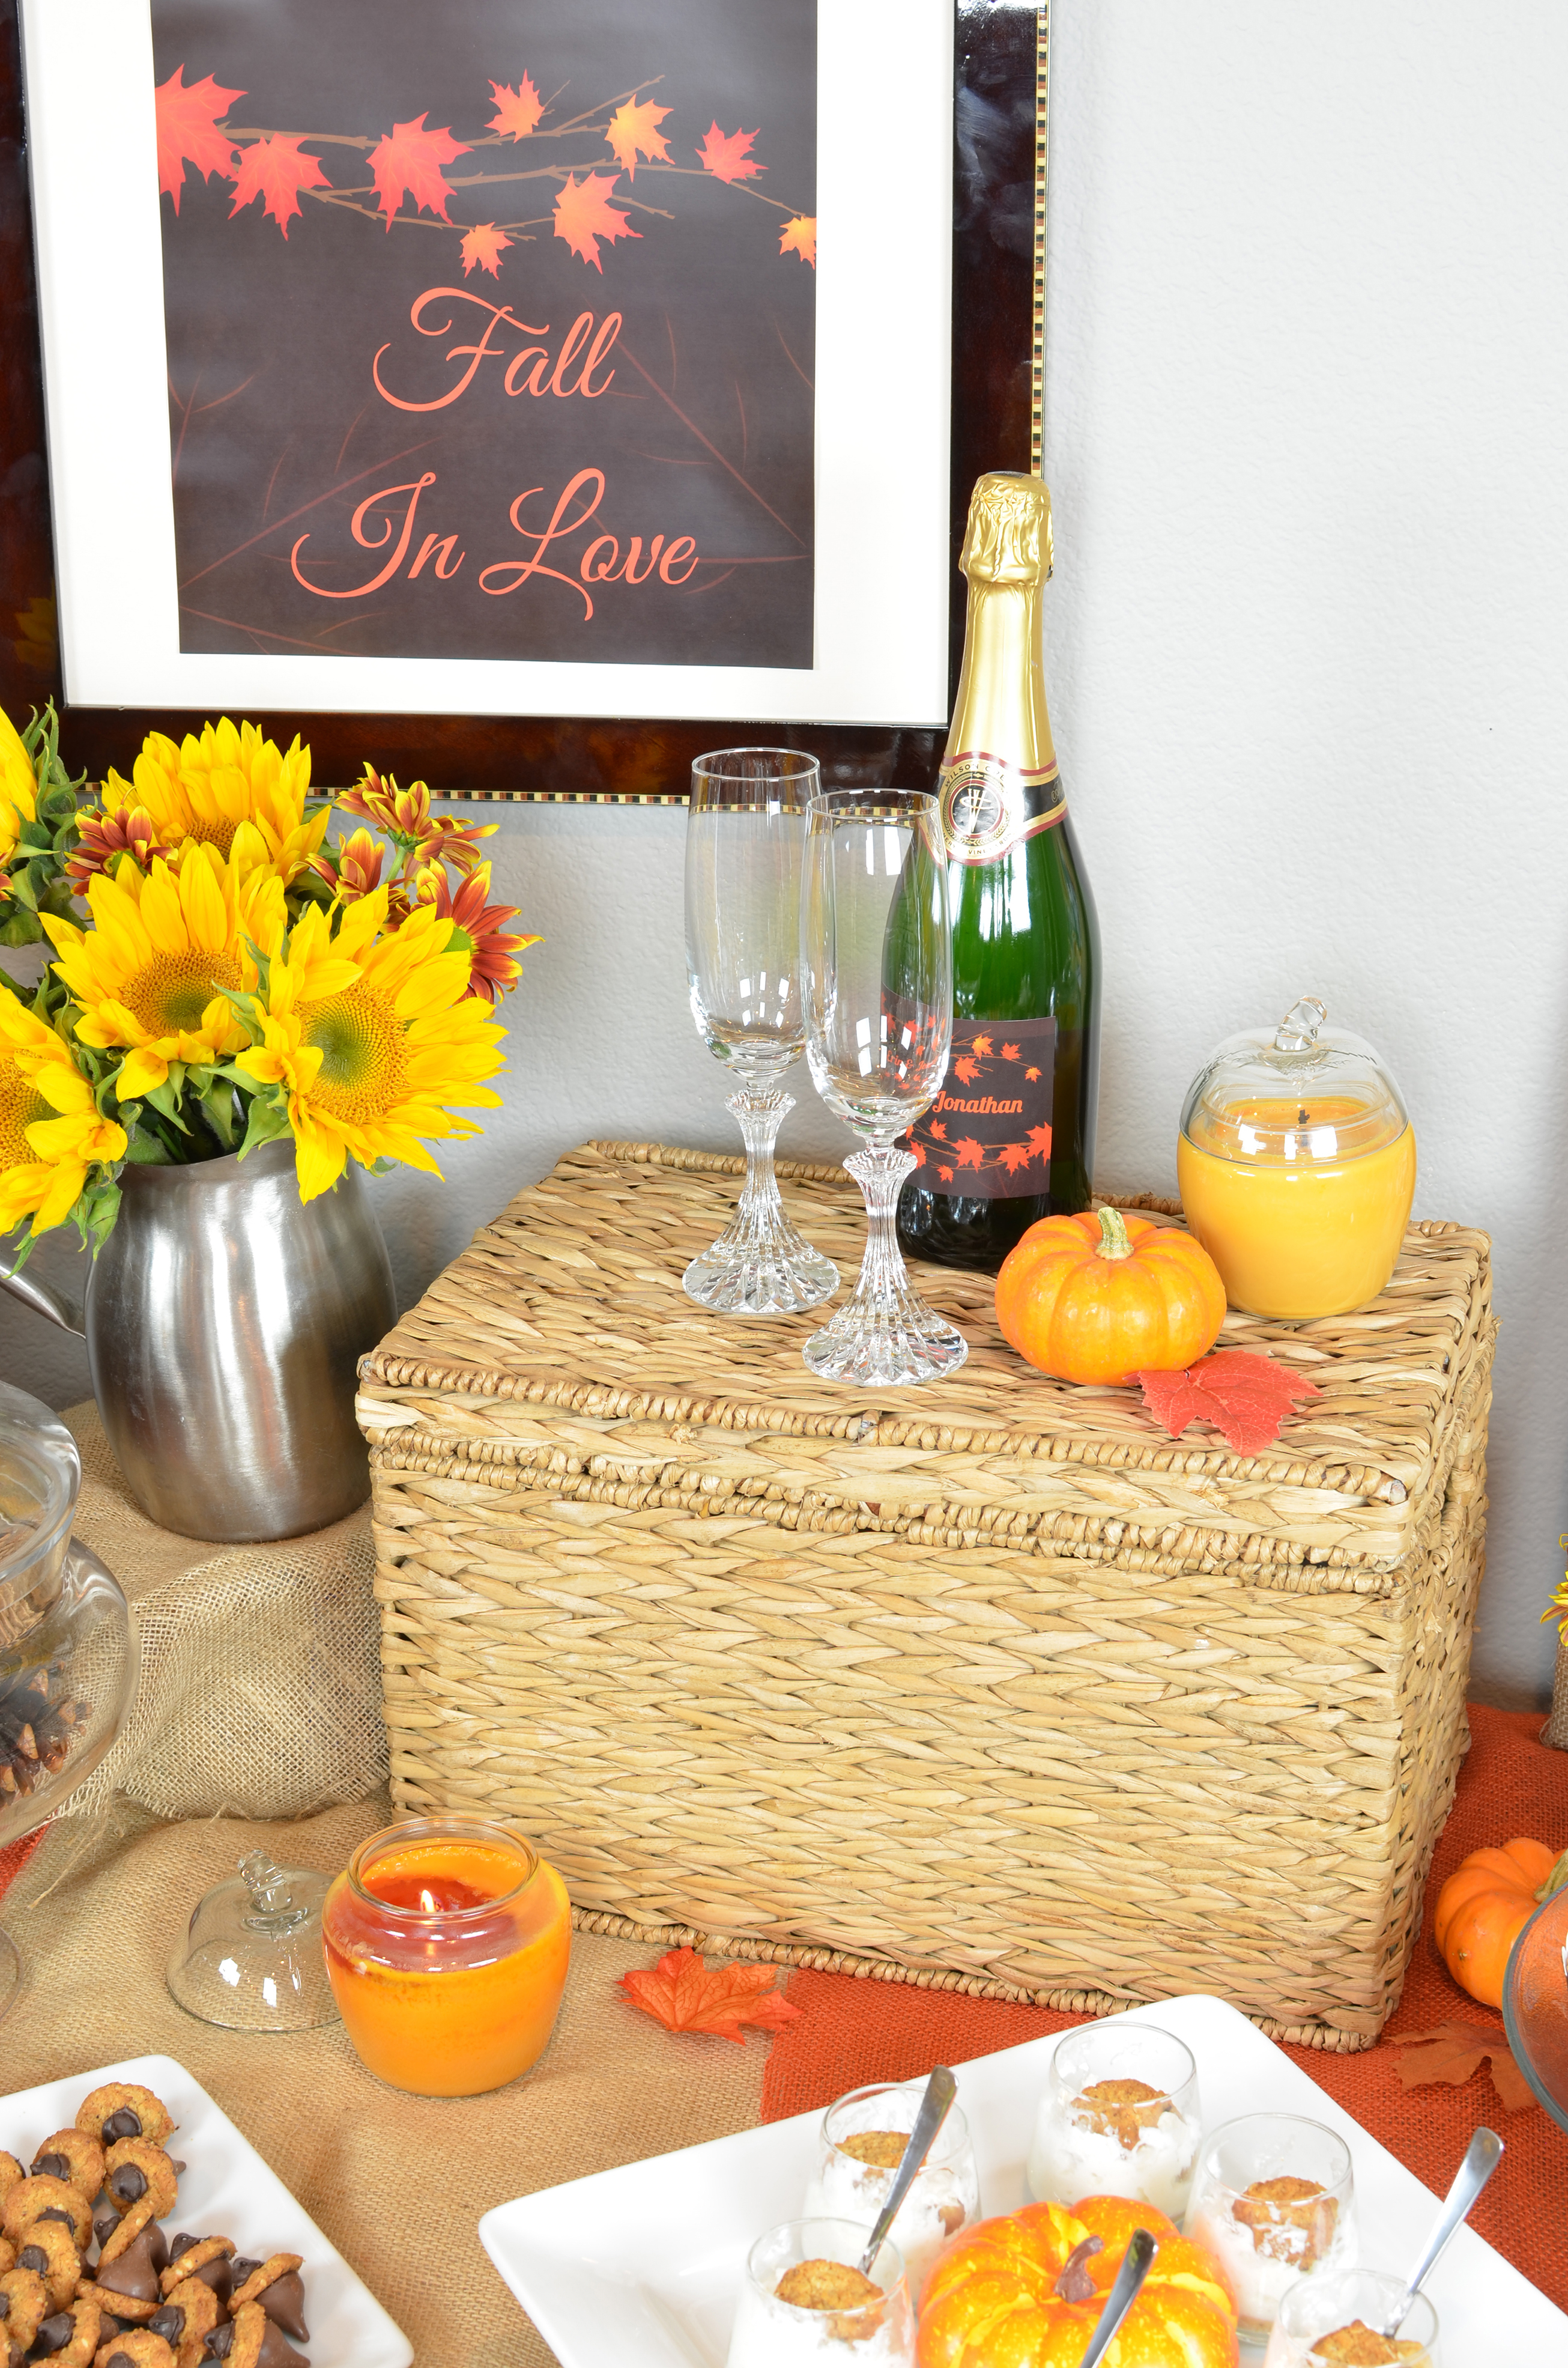 Fall In Love - Bridal Shower Theme - Candles and Favors